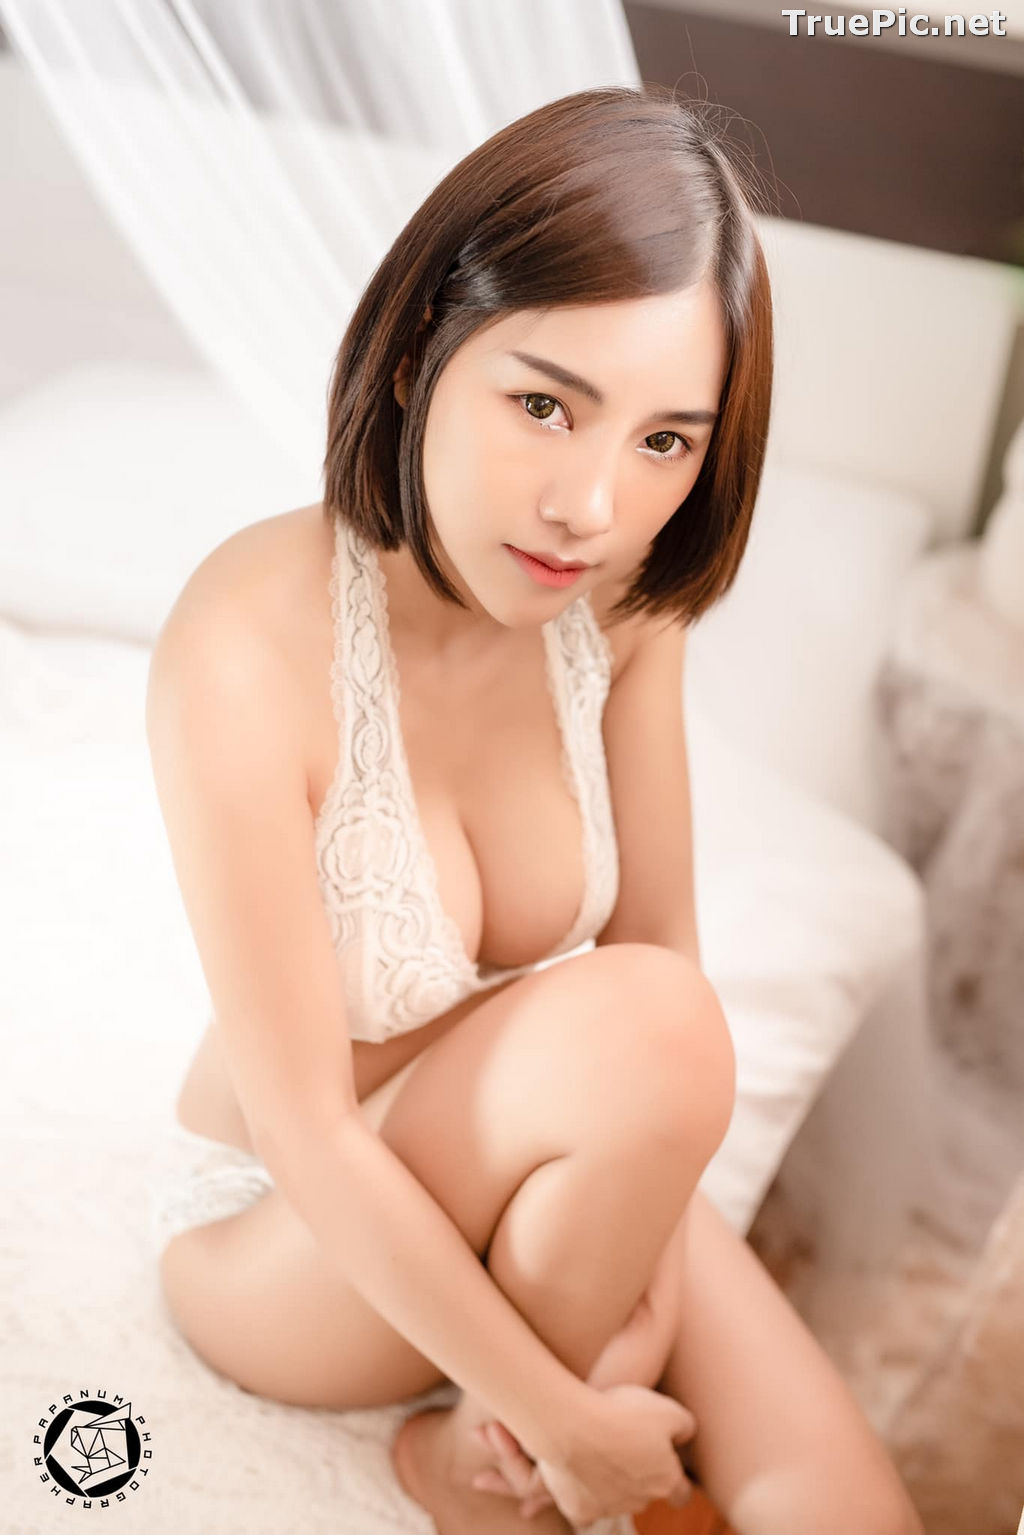 Image Thailand Model - Papoy Kuanpradit - Sexy White Lingerie - TruePic.net - Picture-12